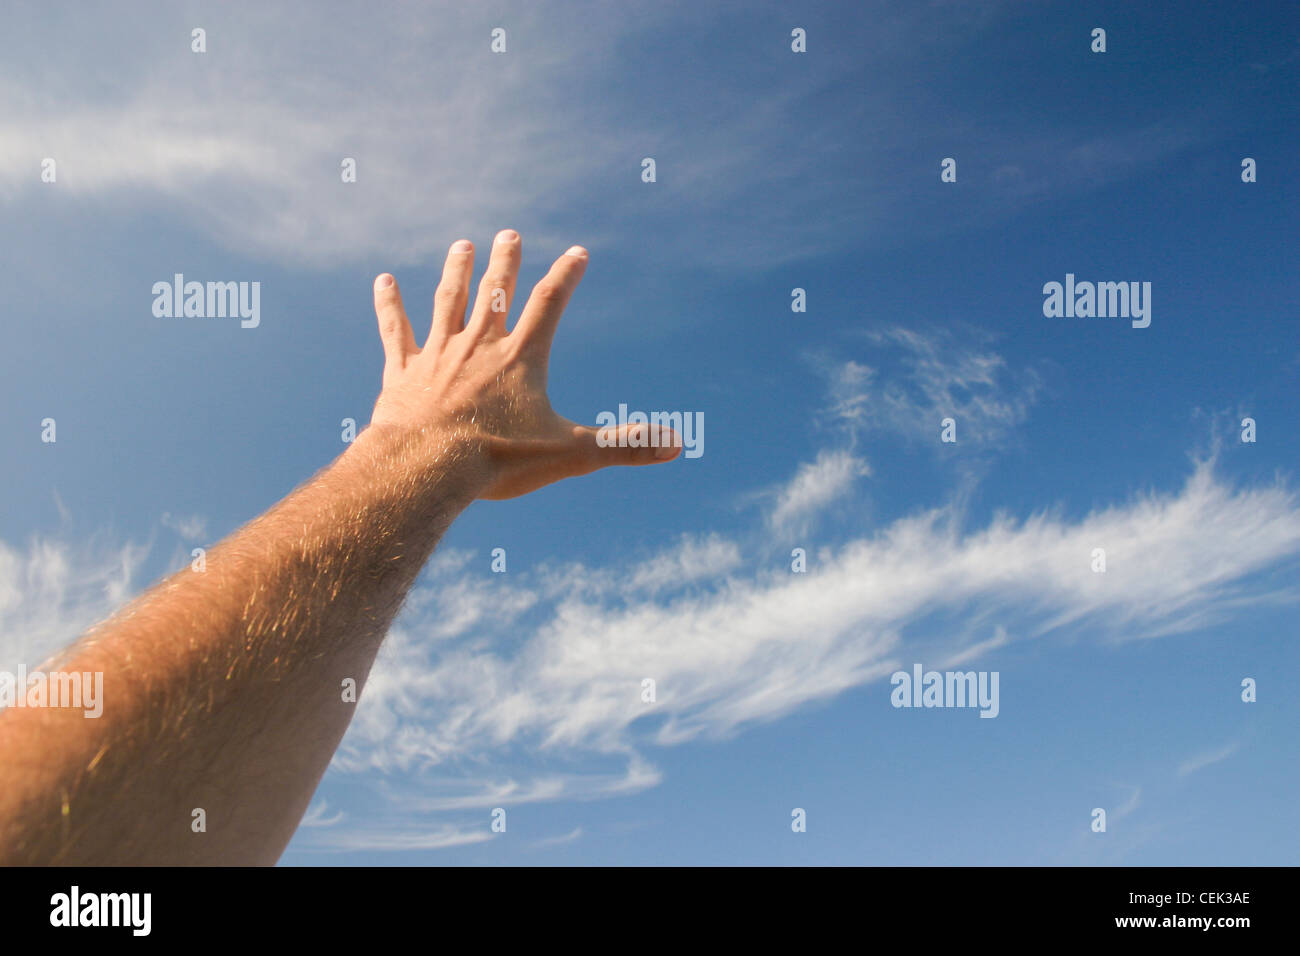 A male hand stretching to reach the sky - Stock Image